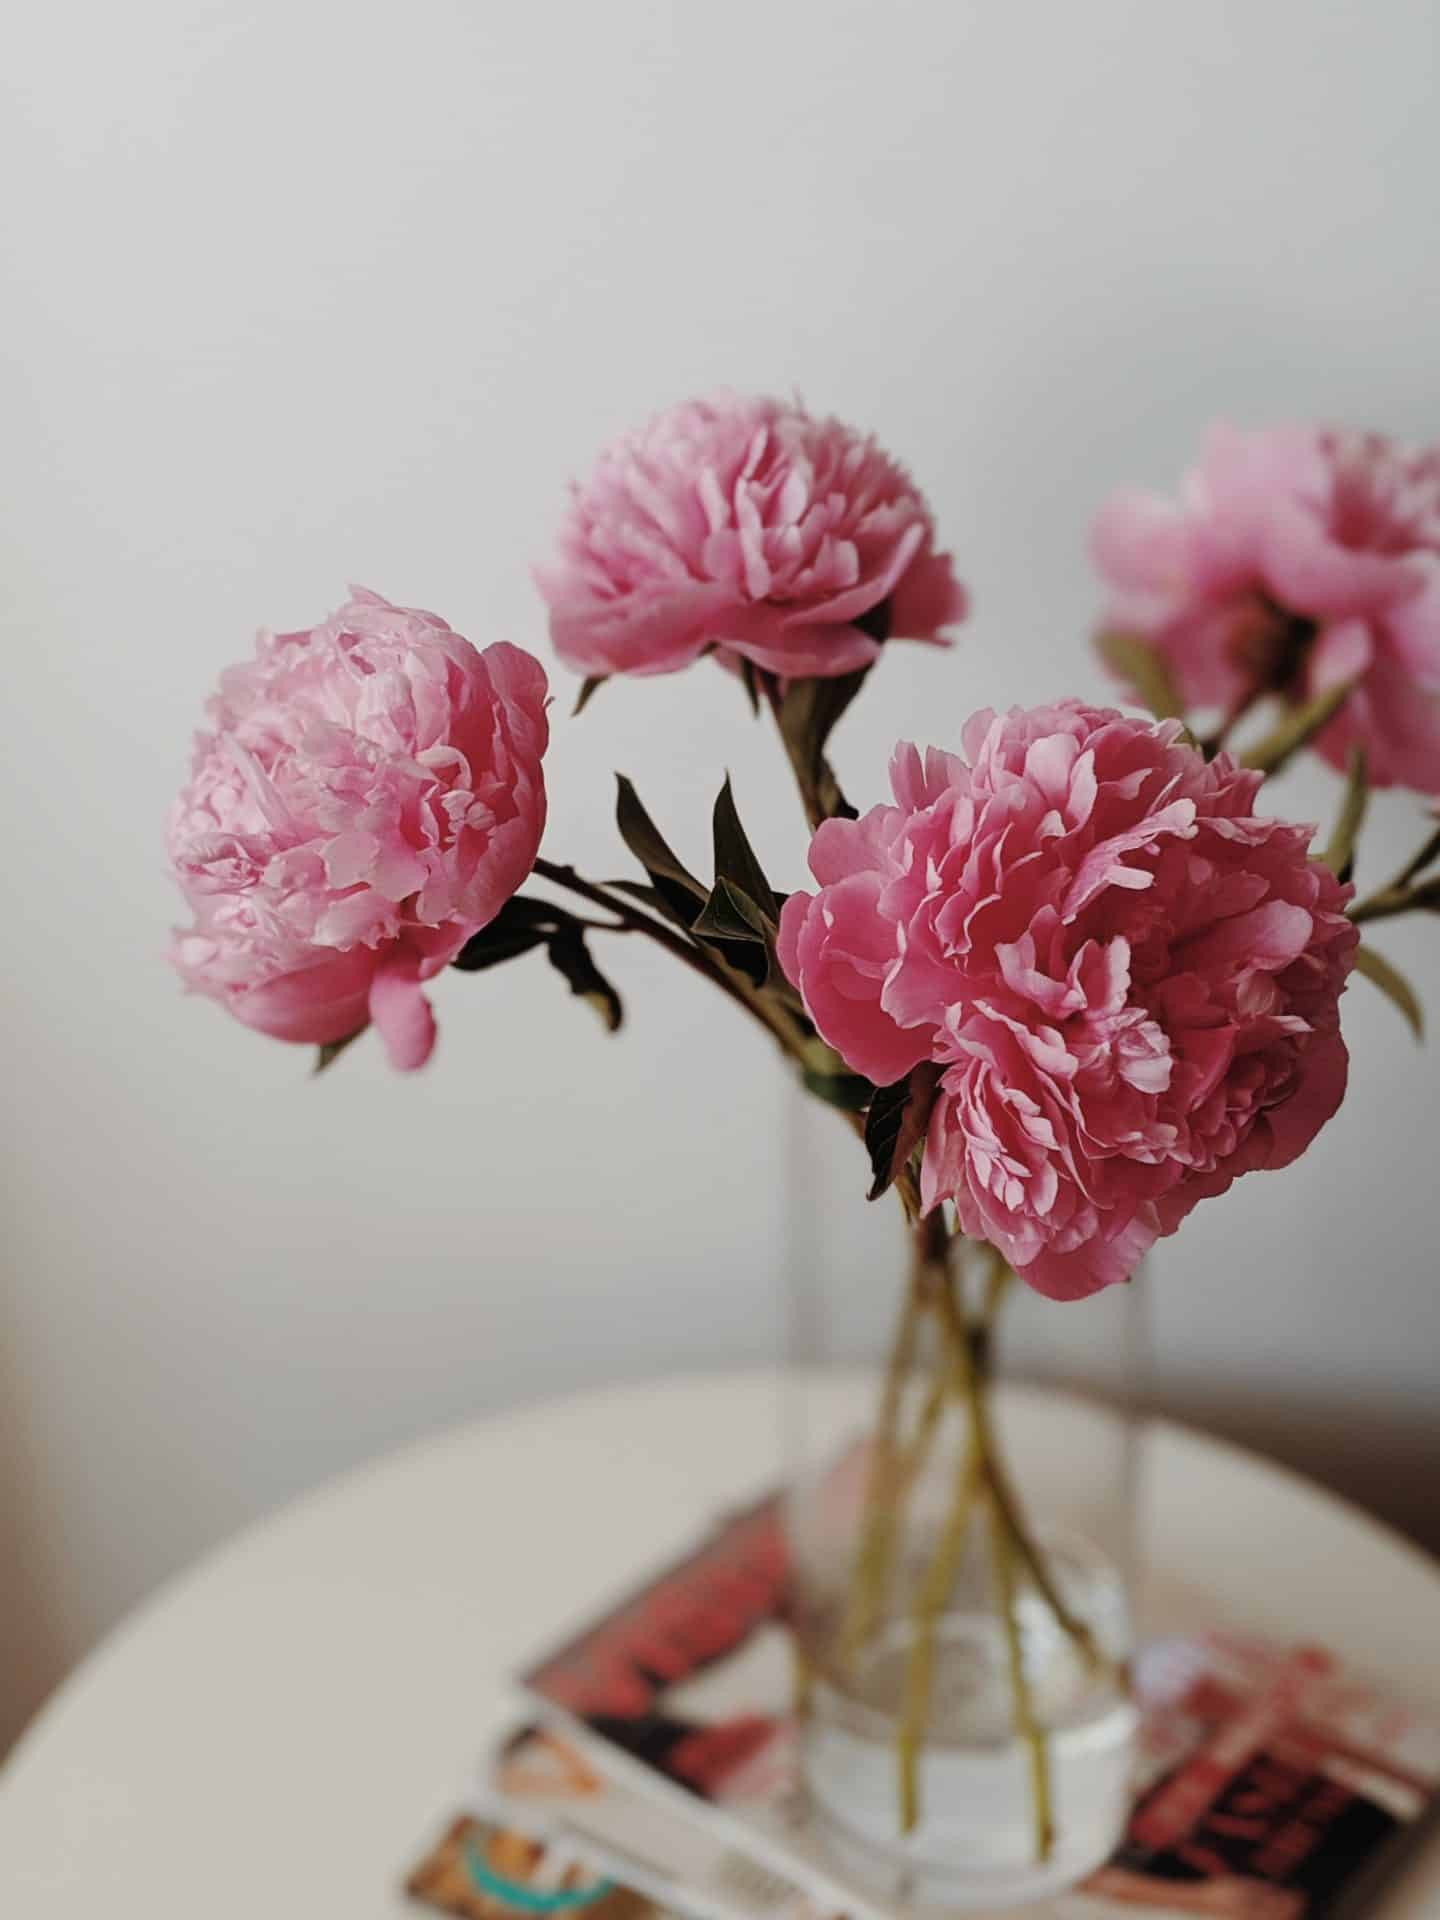 decorating with plants - pink peonies